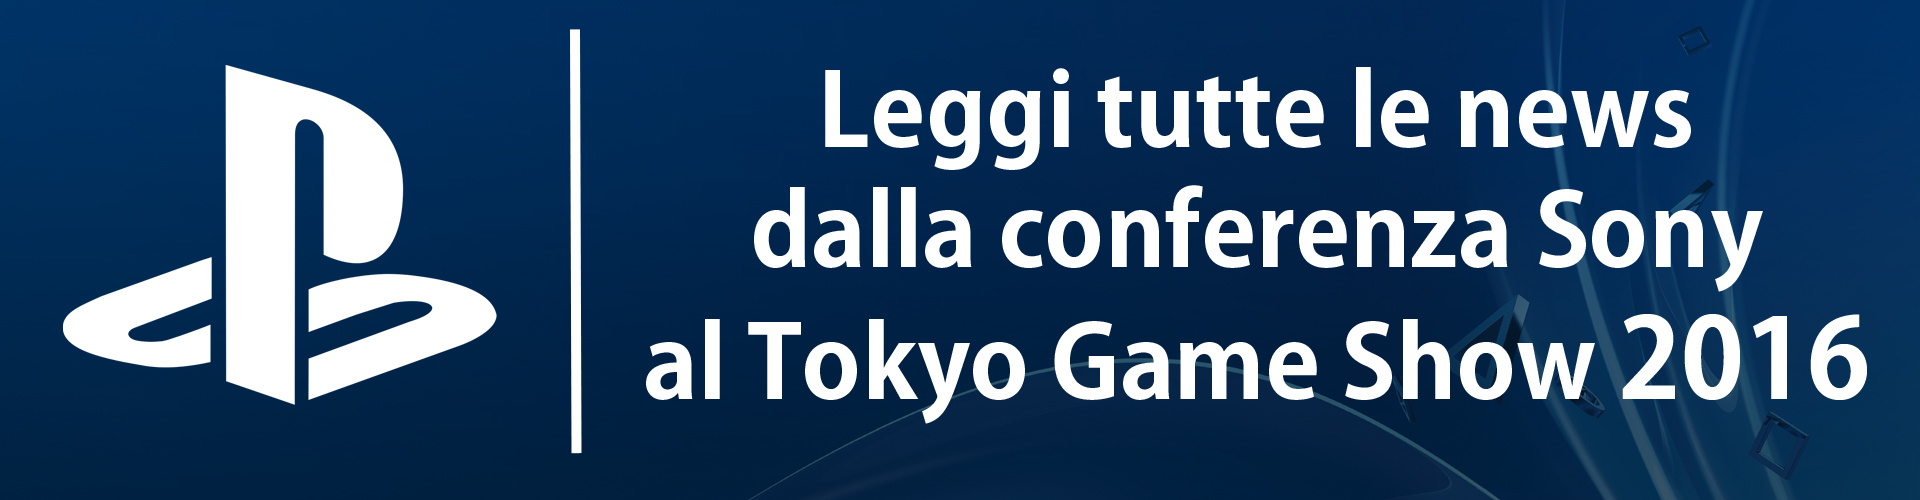 banner-ps-conference-tokyo-game-show-2016-gamesoul